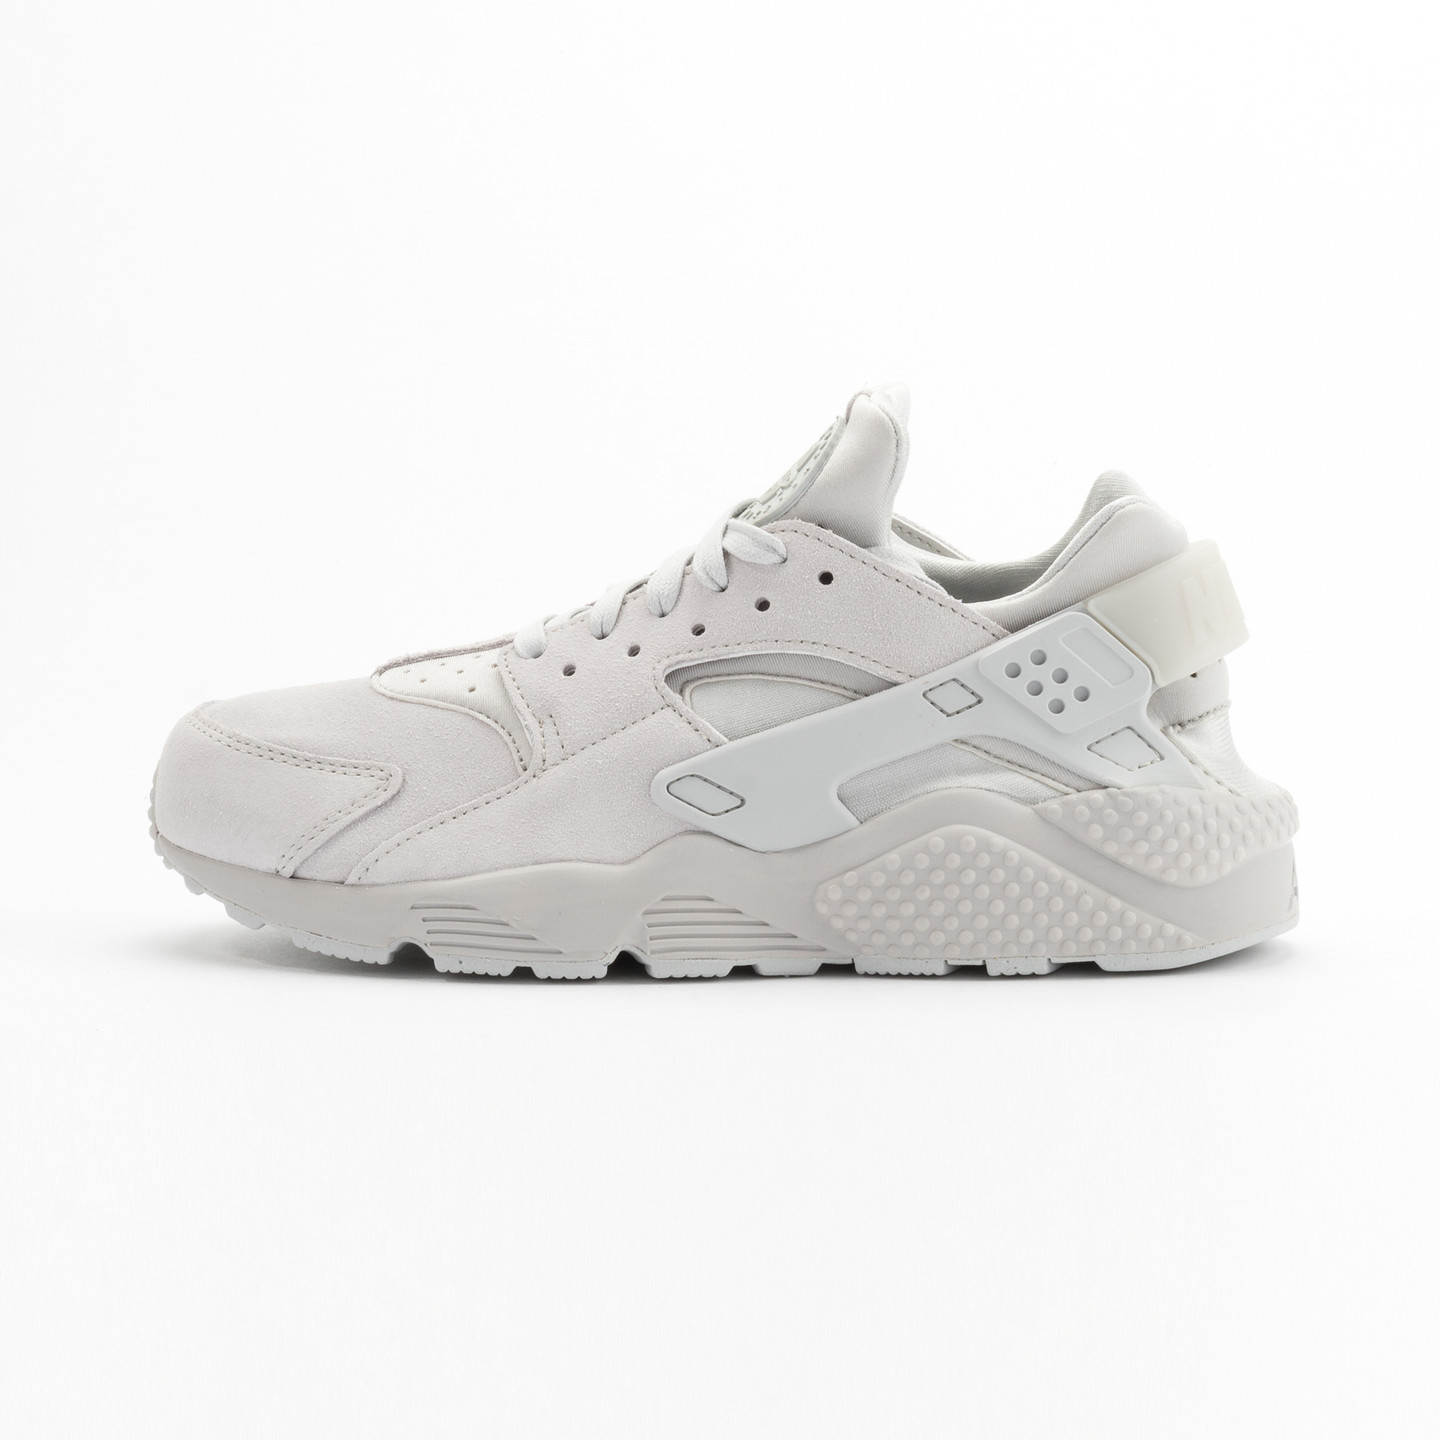 Nike Air Huarache Run Premium Neutral Grey 704830-005-38.5